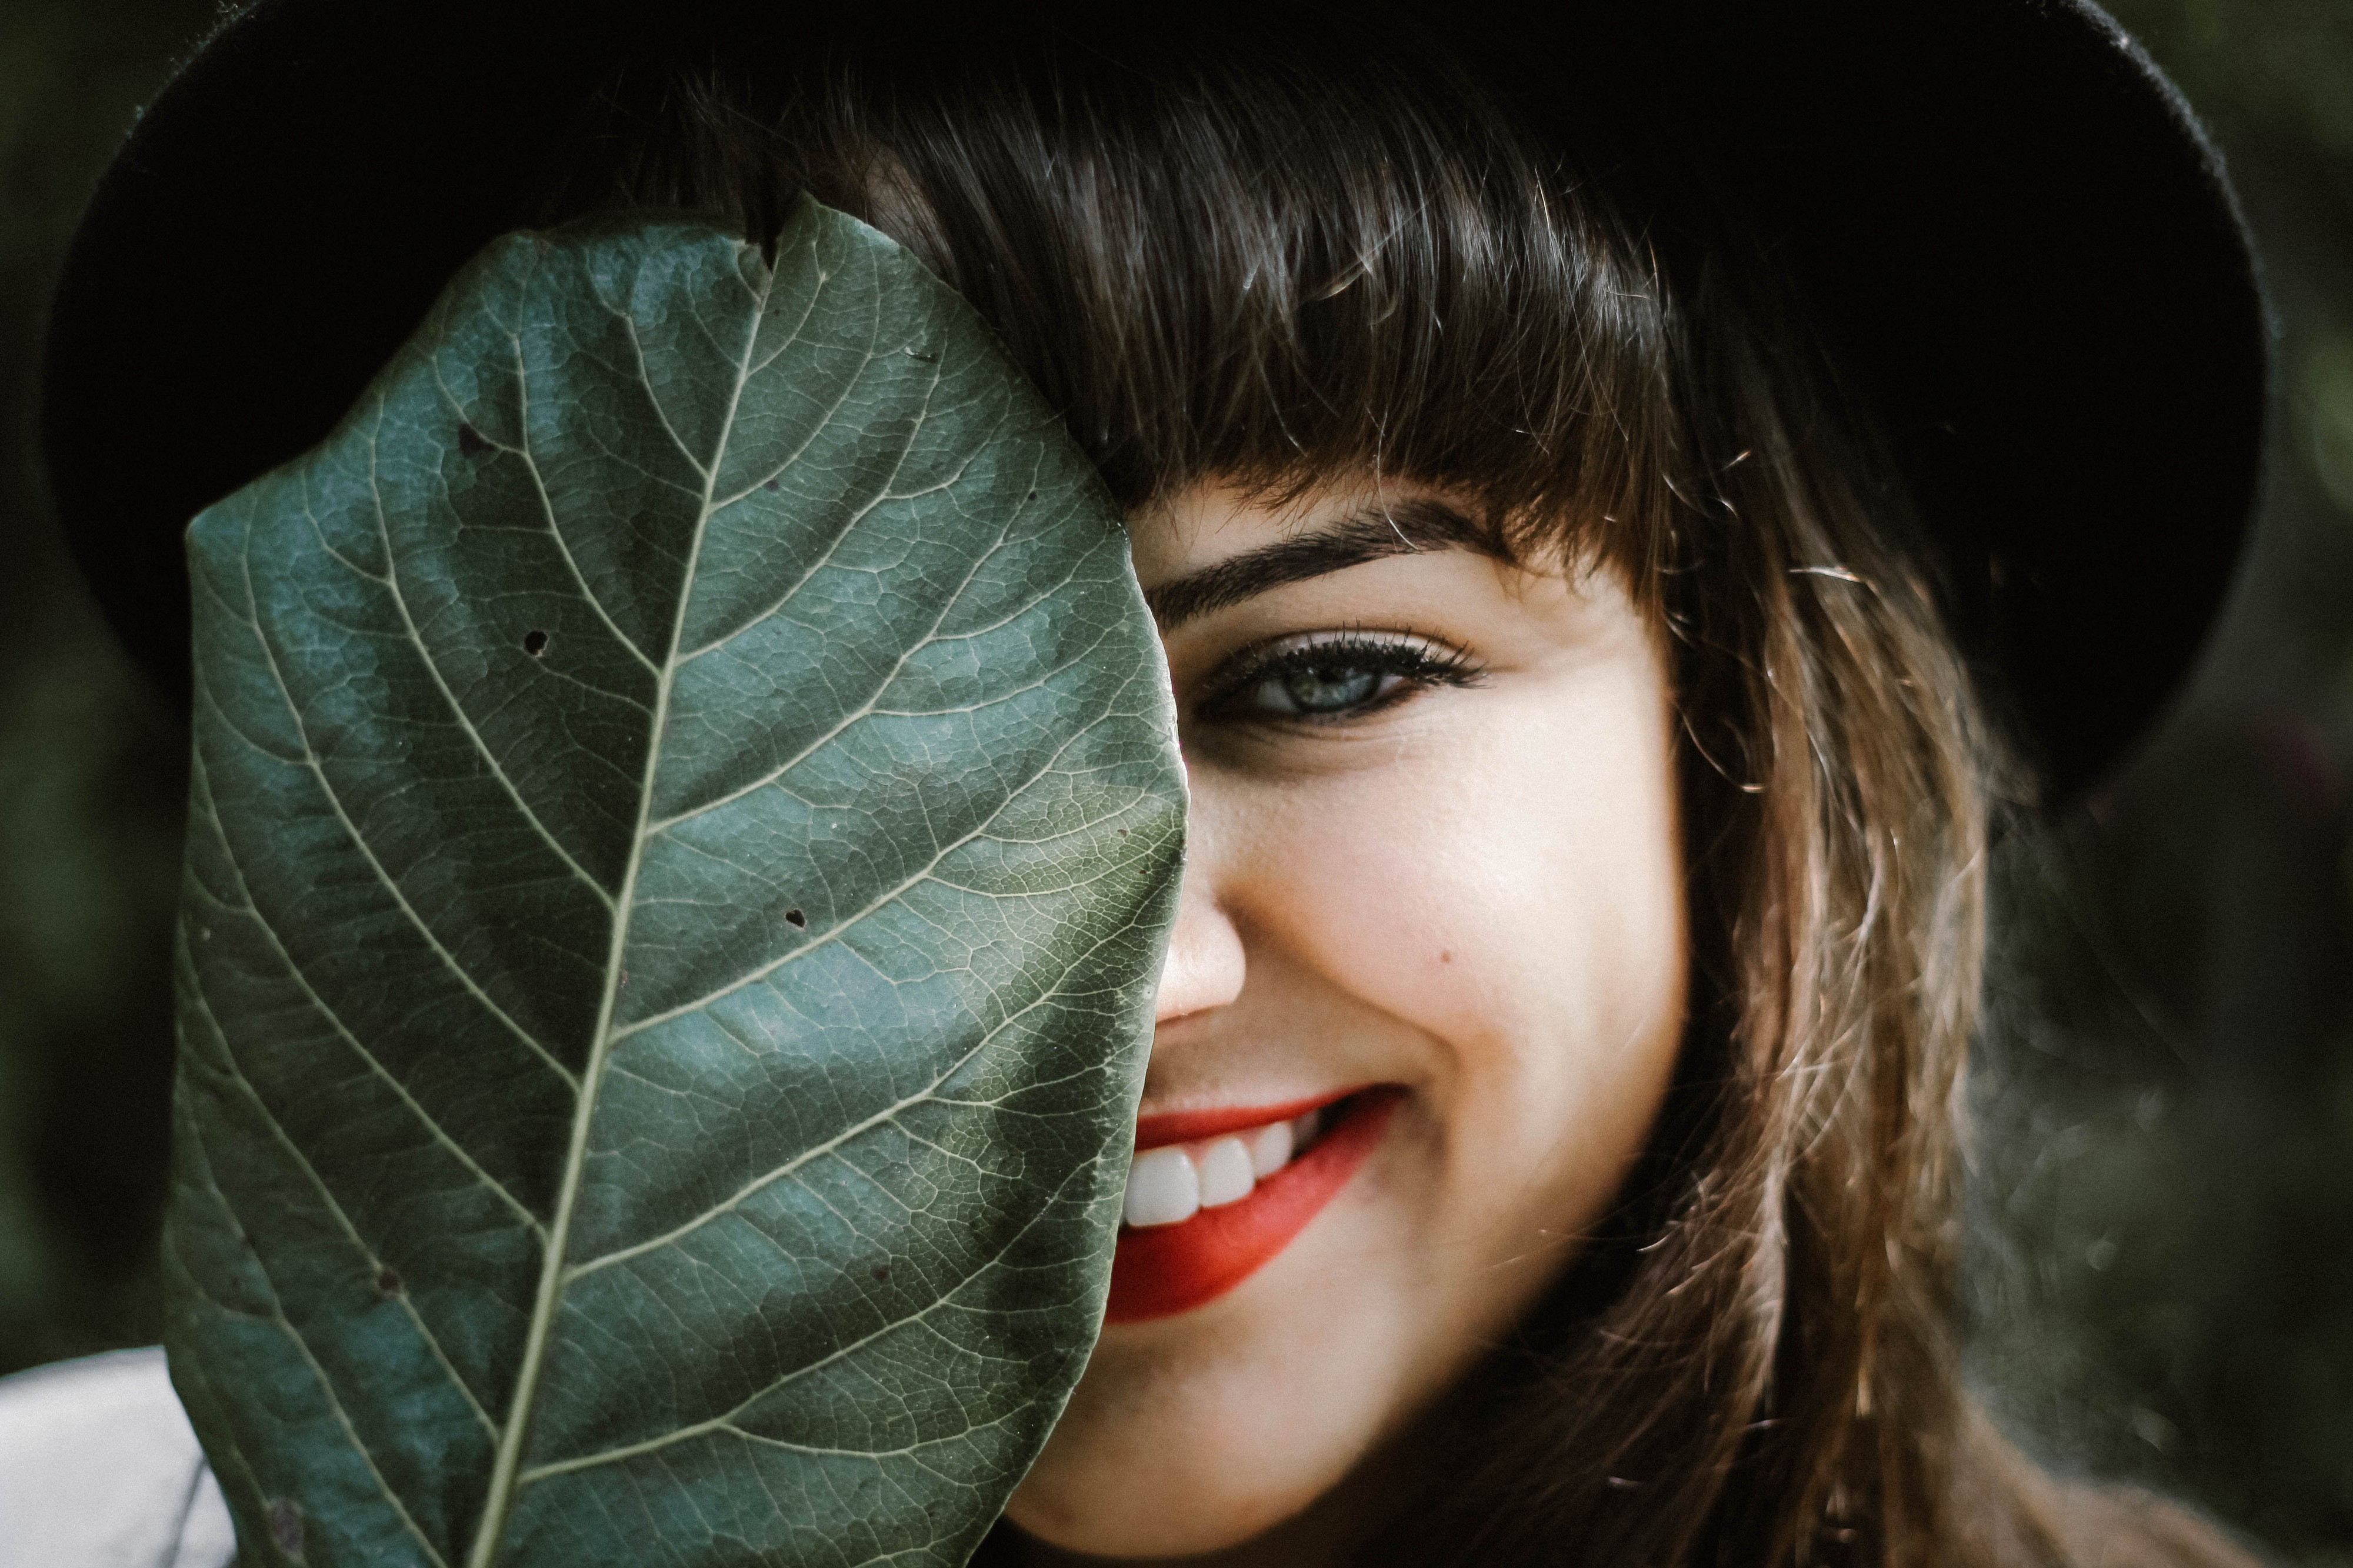 A beautiful girl smiling with half of her face playfully hidden behind a leaf. She has red lipstick and a black hat on.